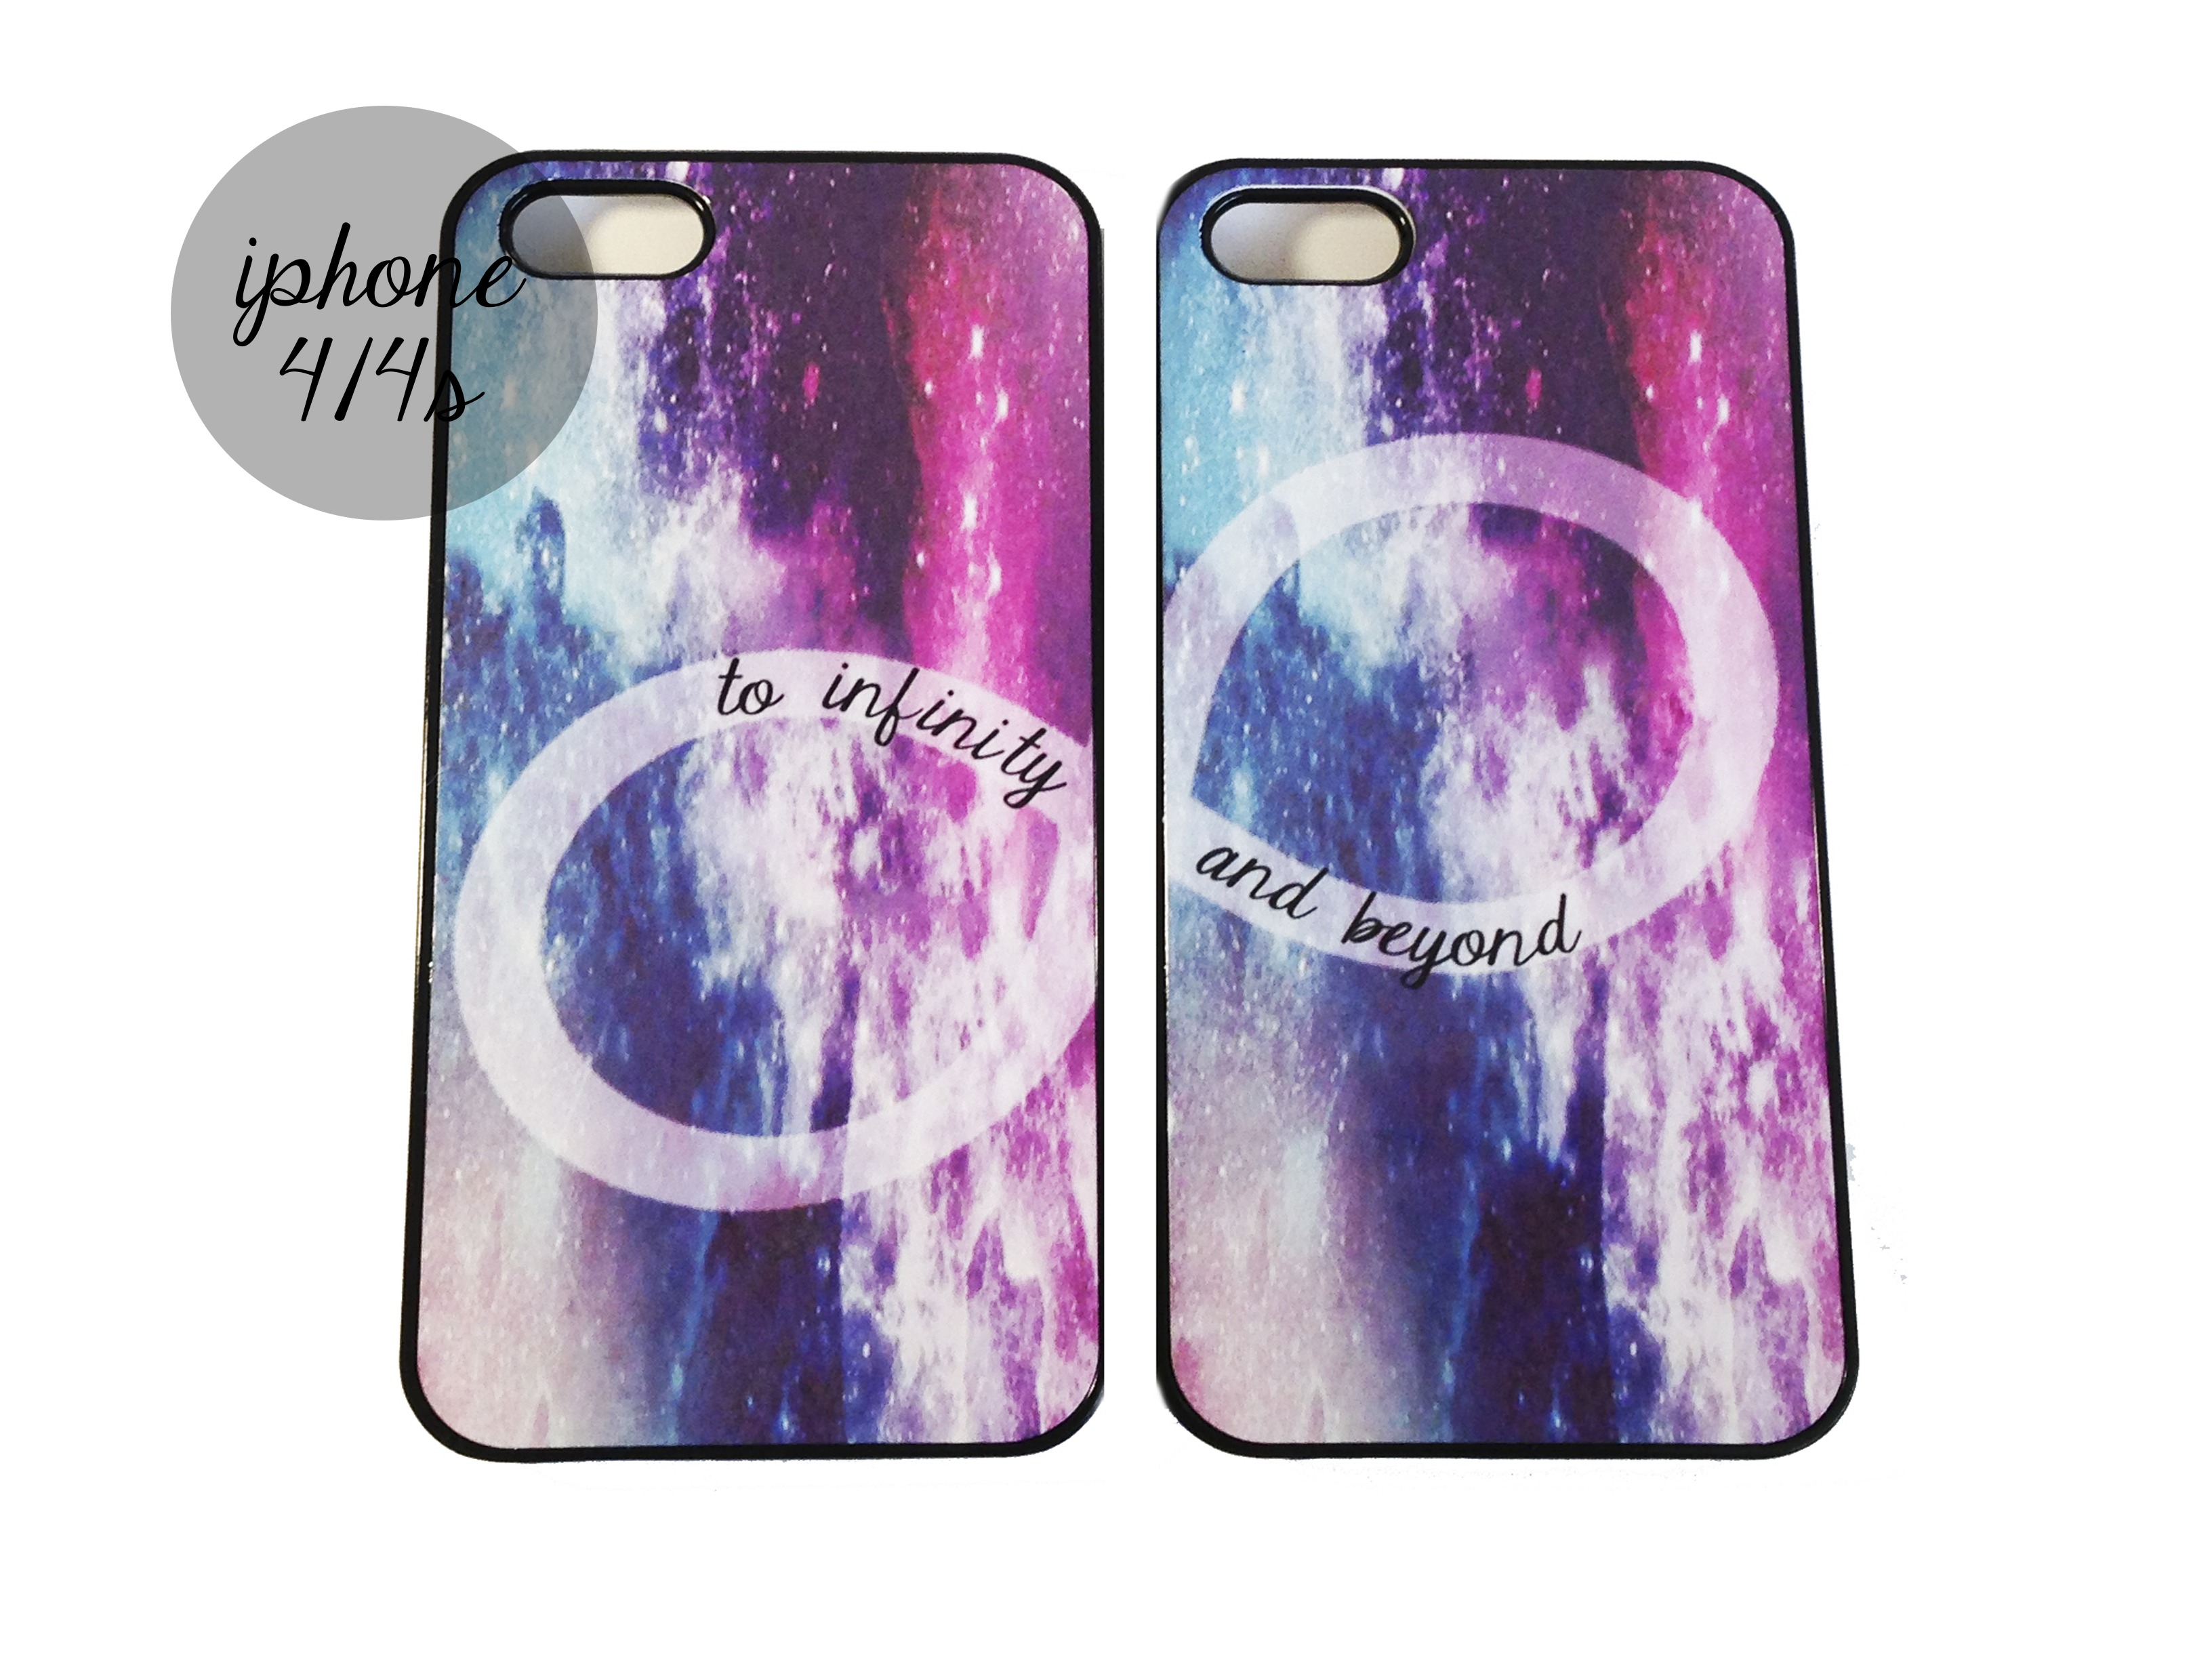 ... best friends iphone cases galaxy to infinity an beyond best f by